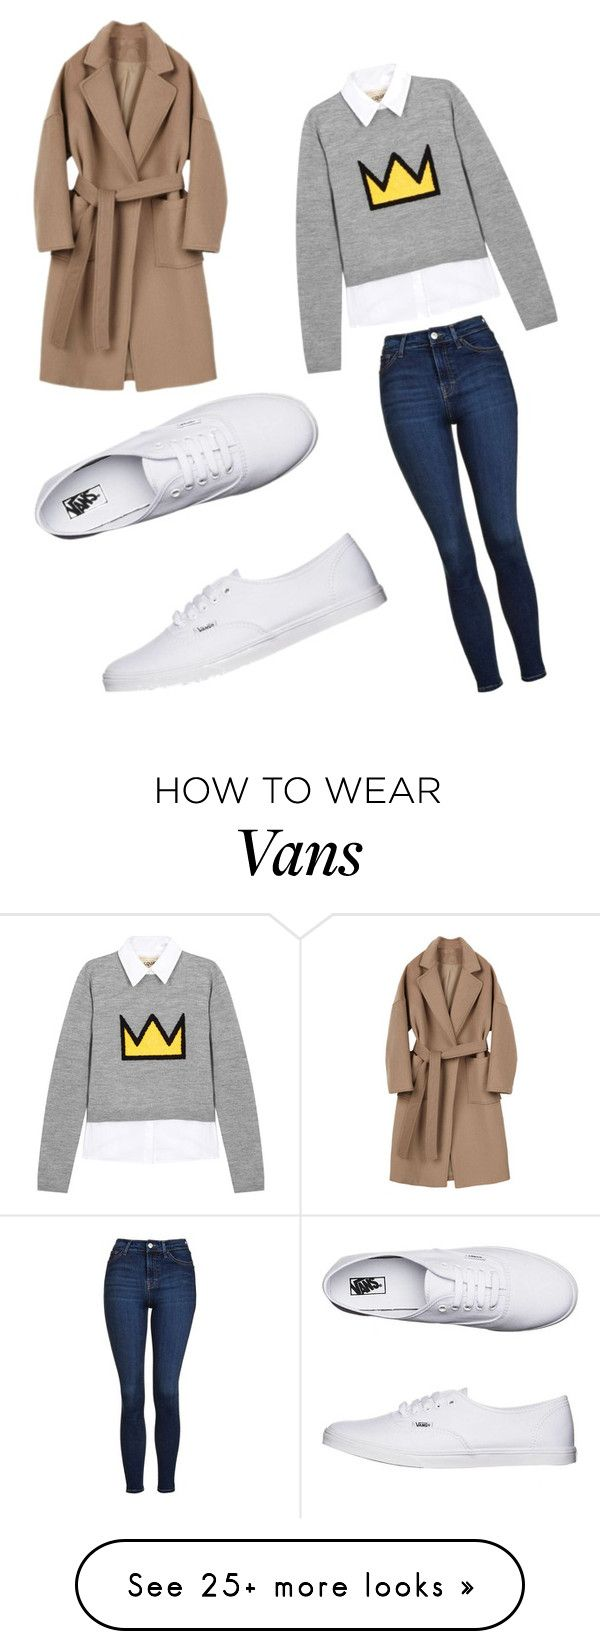 """Лол"" by dashasneglolkek on Polyvore featuring Topshop, Alice + Olivia and Vans"